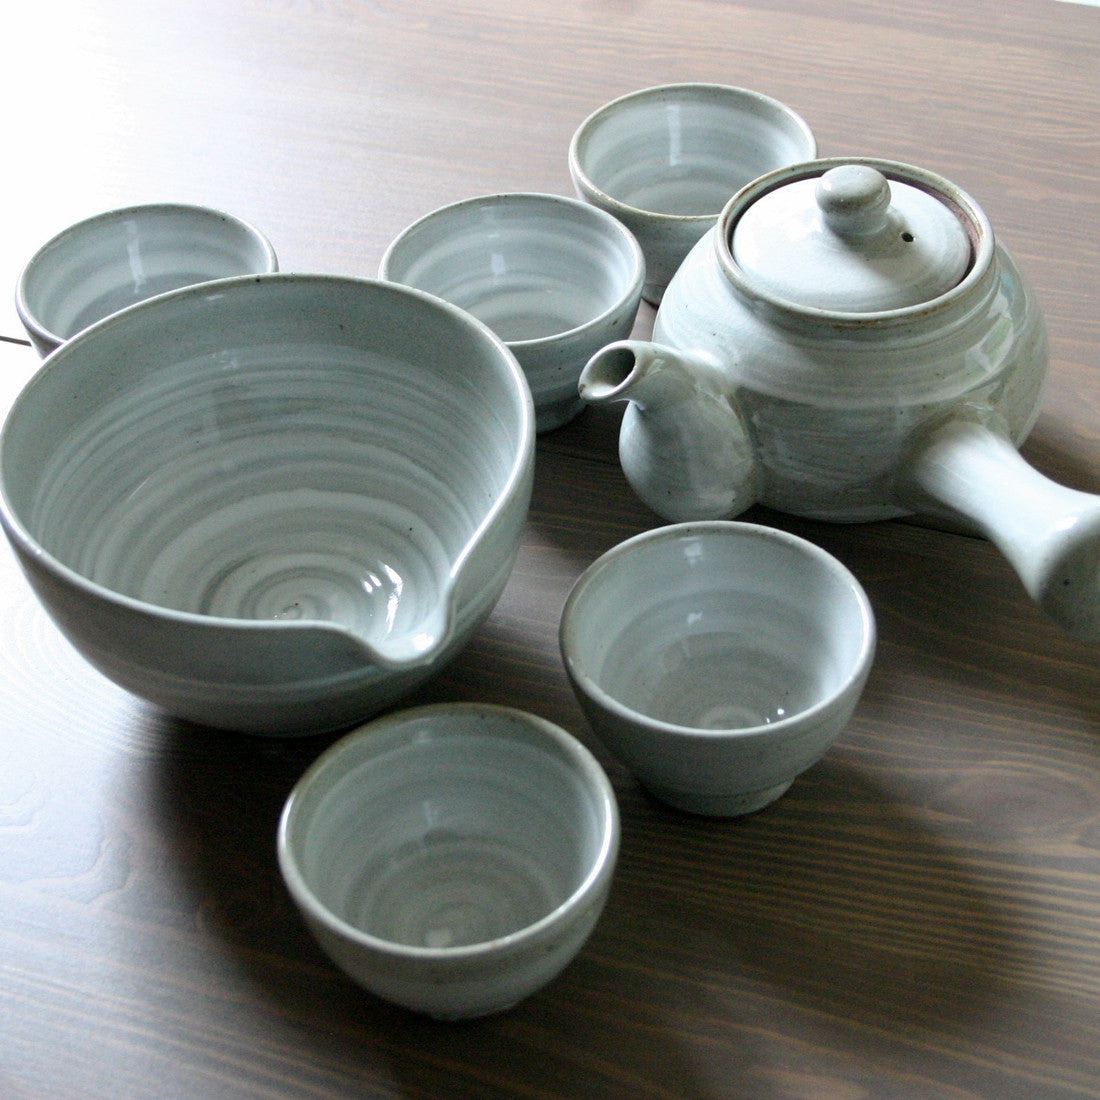 Korean tea set - Brush Touch 5 cups & Korean tea set - Brush Touch 5 cups | Zen Tea | Worldu0027s Teapots Tea ...